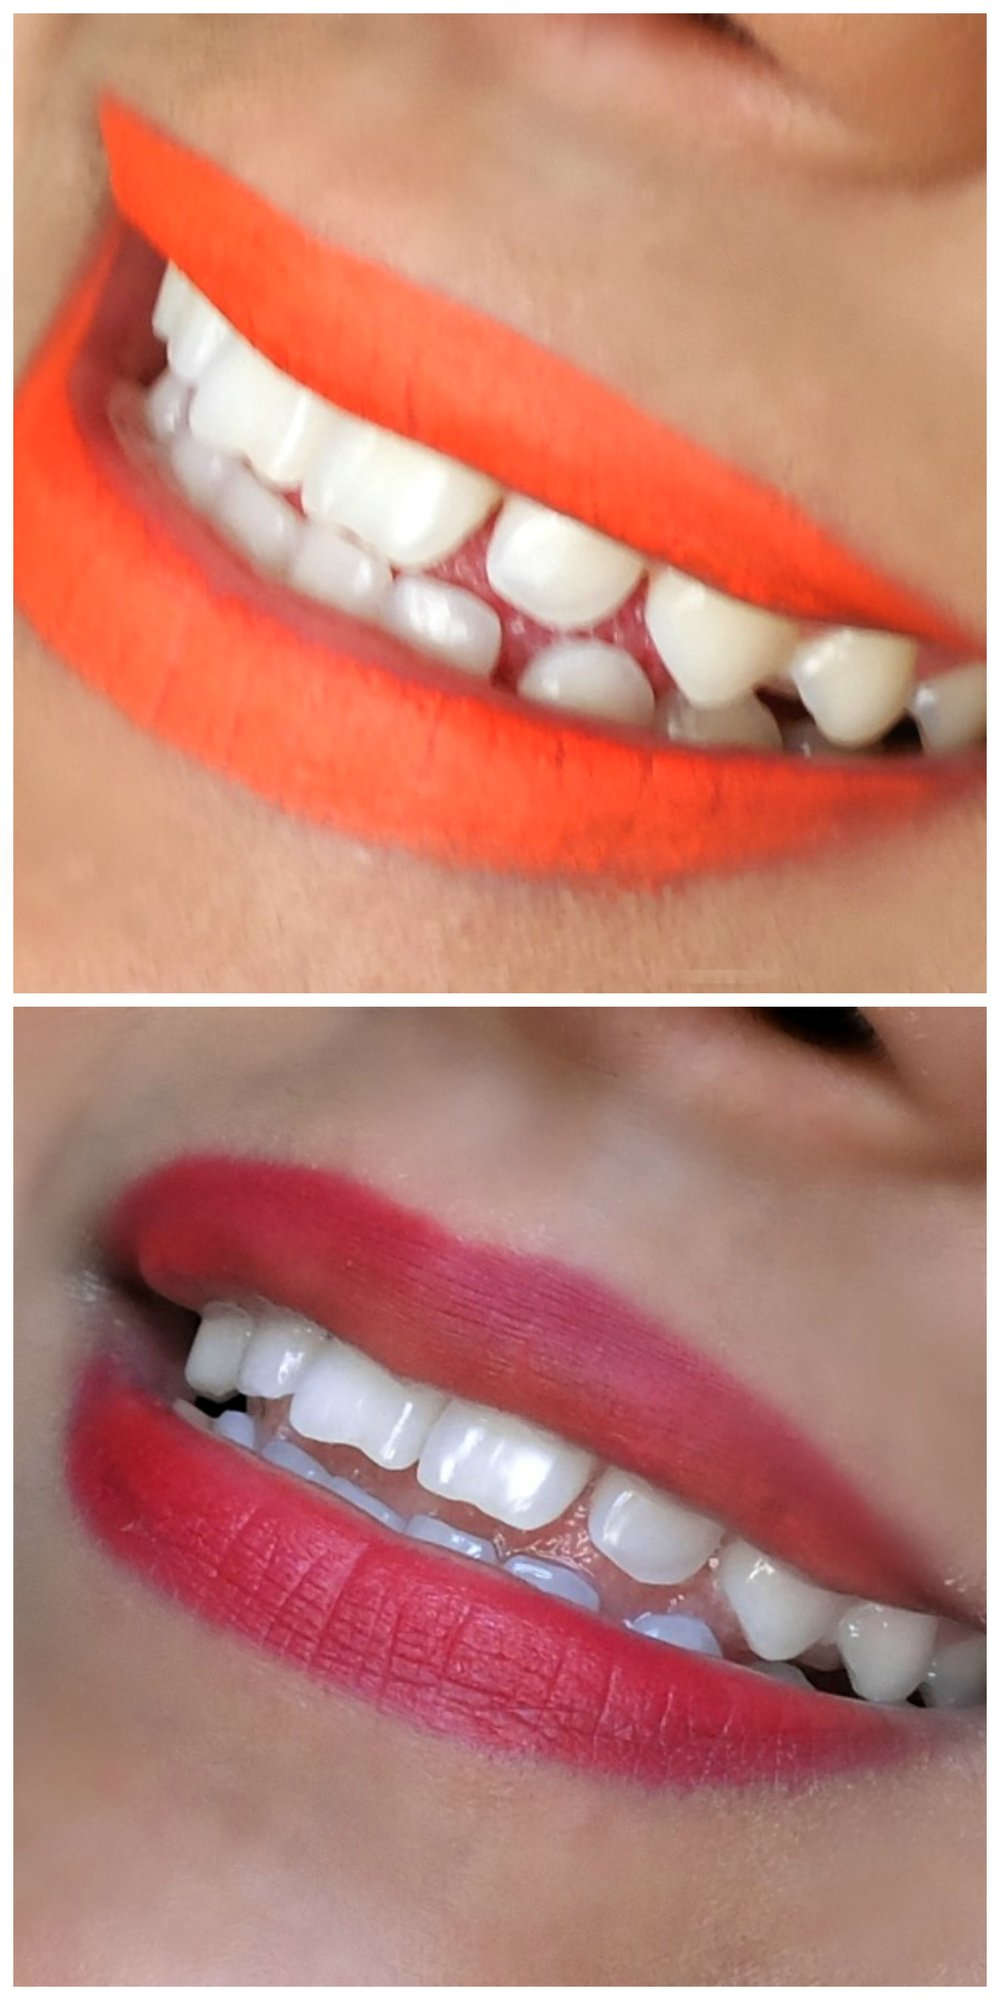 Before and After Results  - The two photos were taken before trying Smile Brilliant and then after (a few days ago). The photos were taken in different lighting so the color temperature may seem different but the results are obvious!